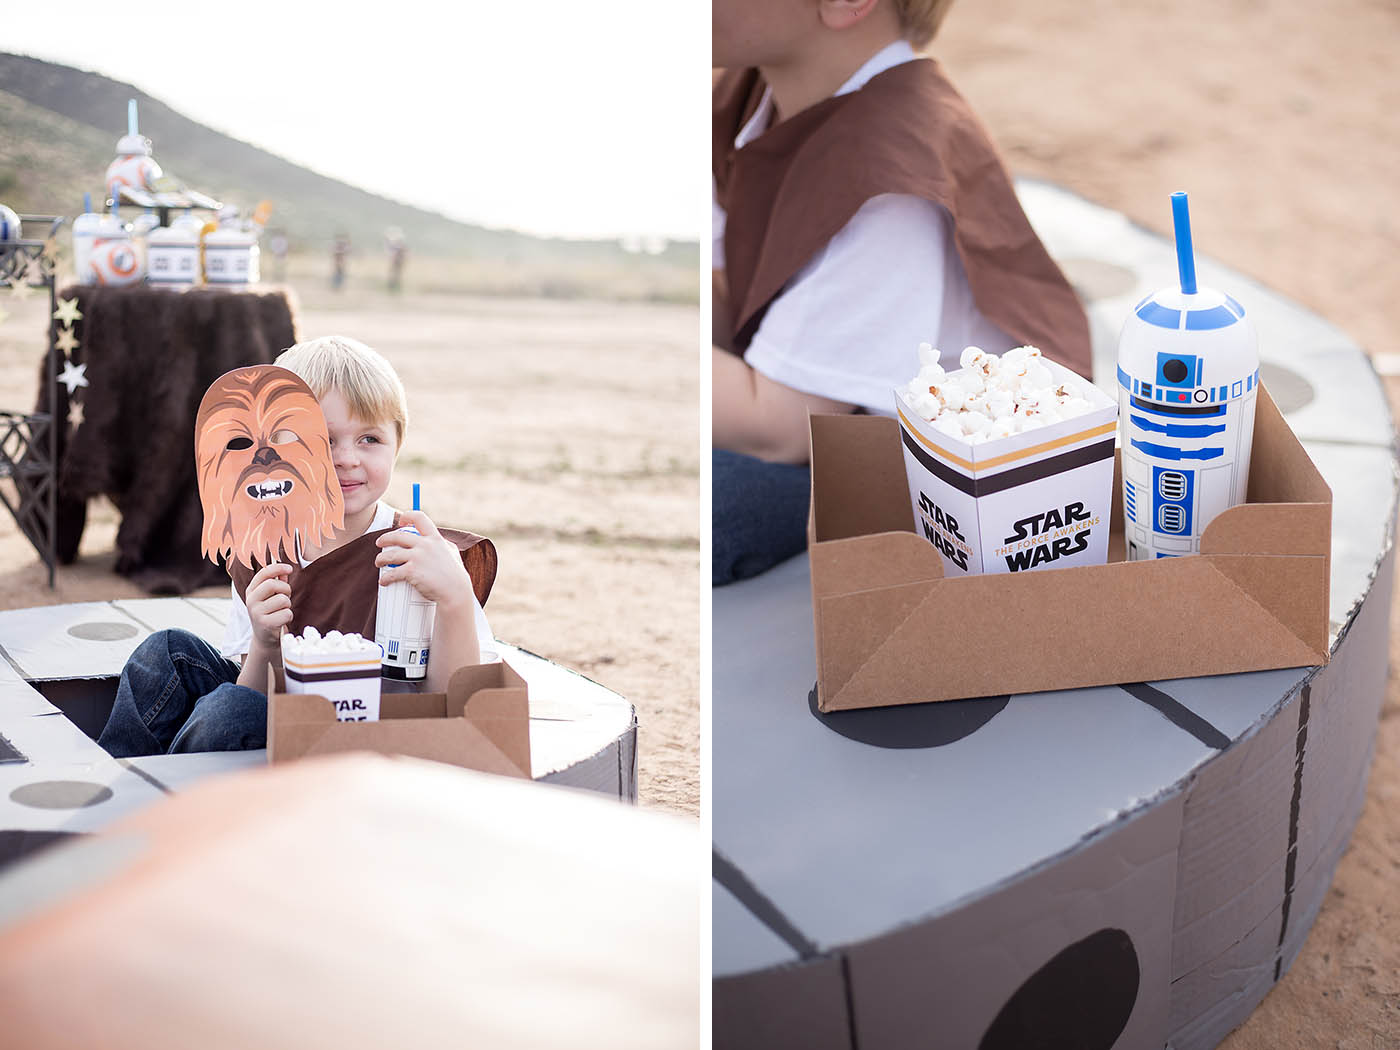 Star Wars: The Force Awakens outdoor movie night birthday party! Treats, printables, cardboard ships and more!